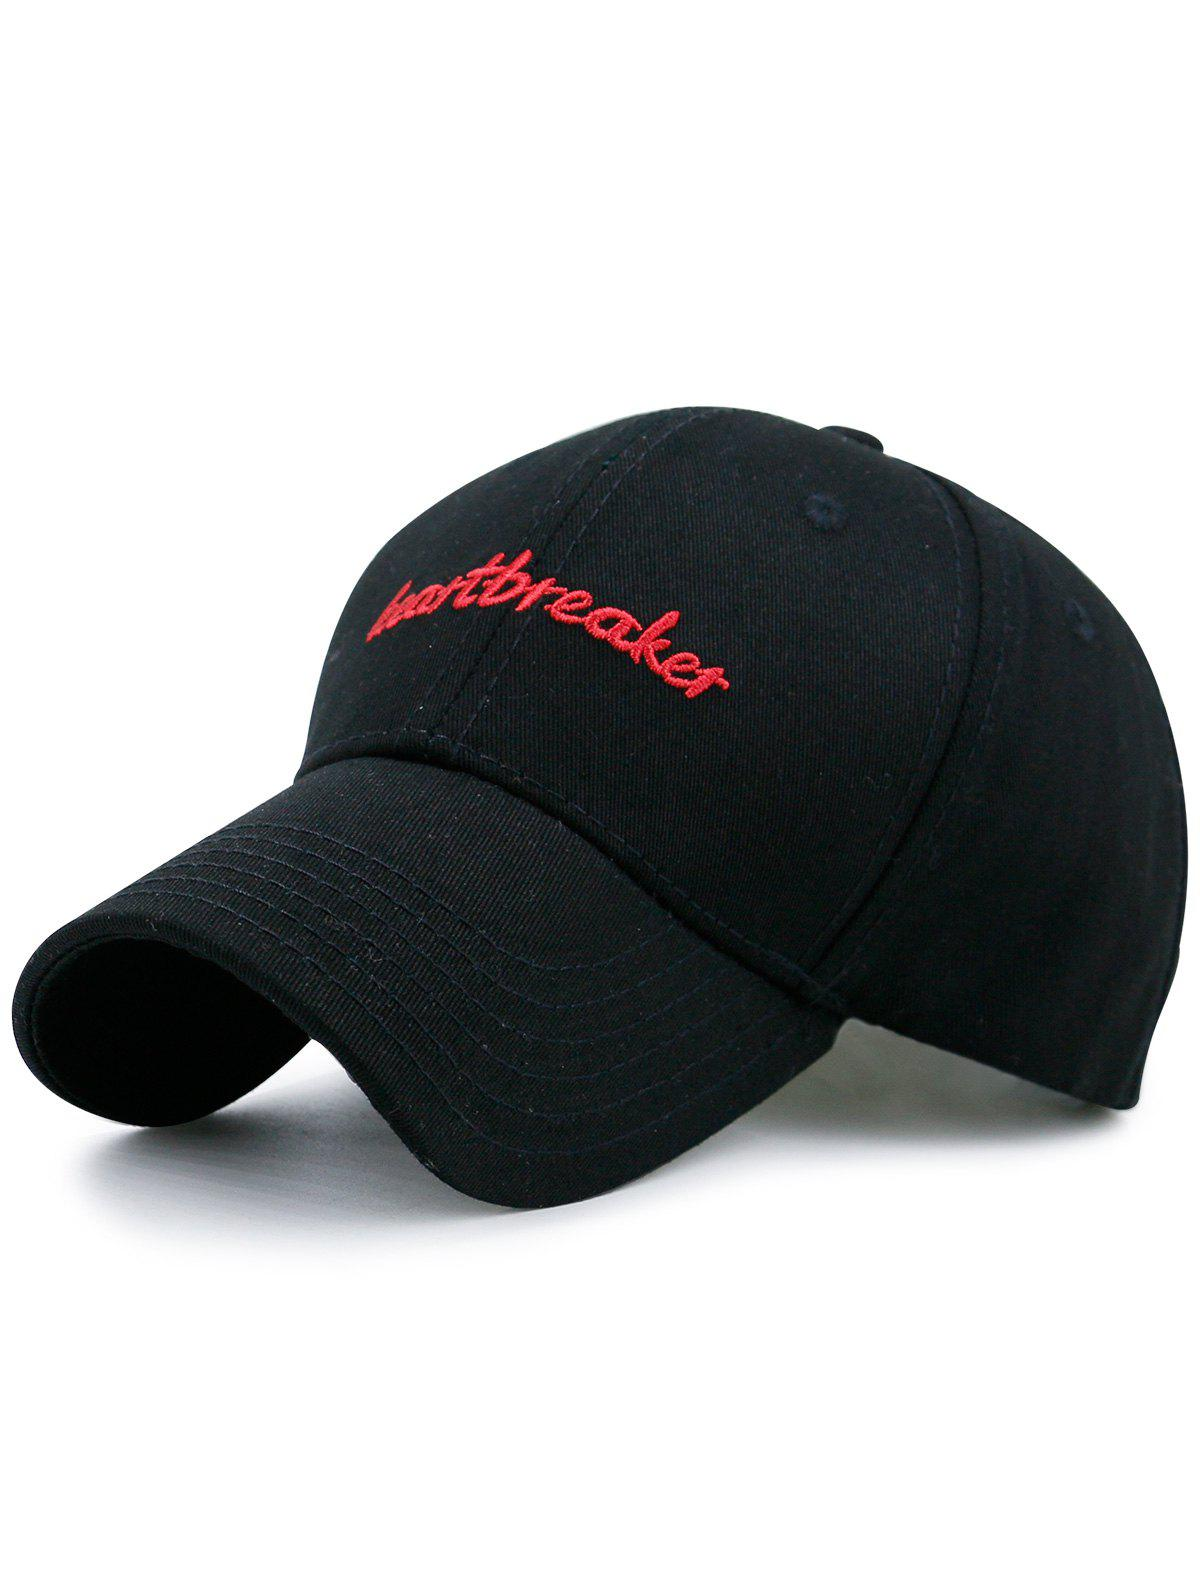 Baseball Hat with Letters Heartbreaket Embroidery - FULL BLACK